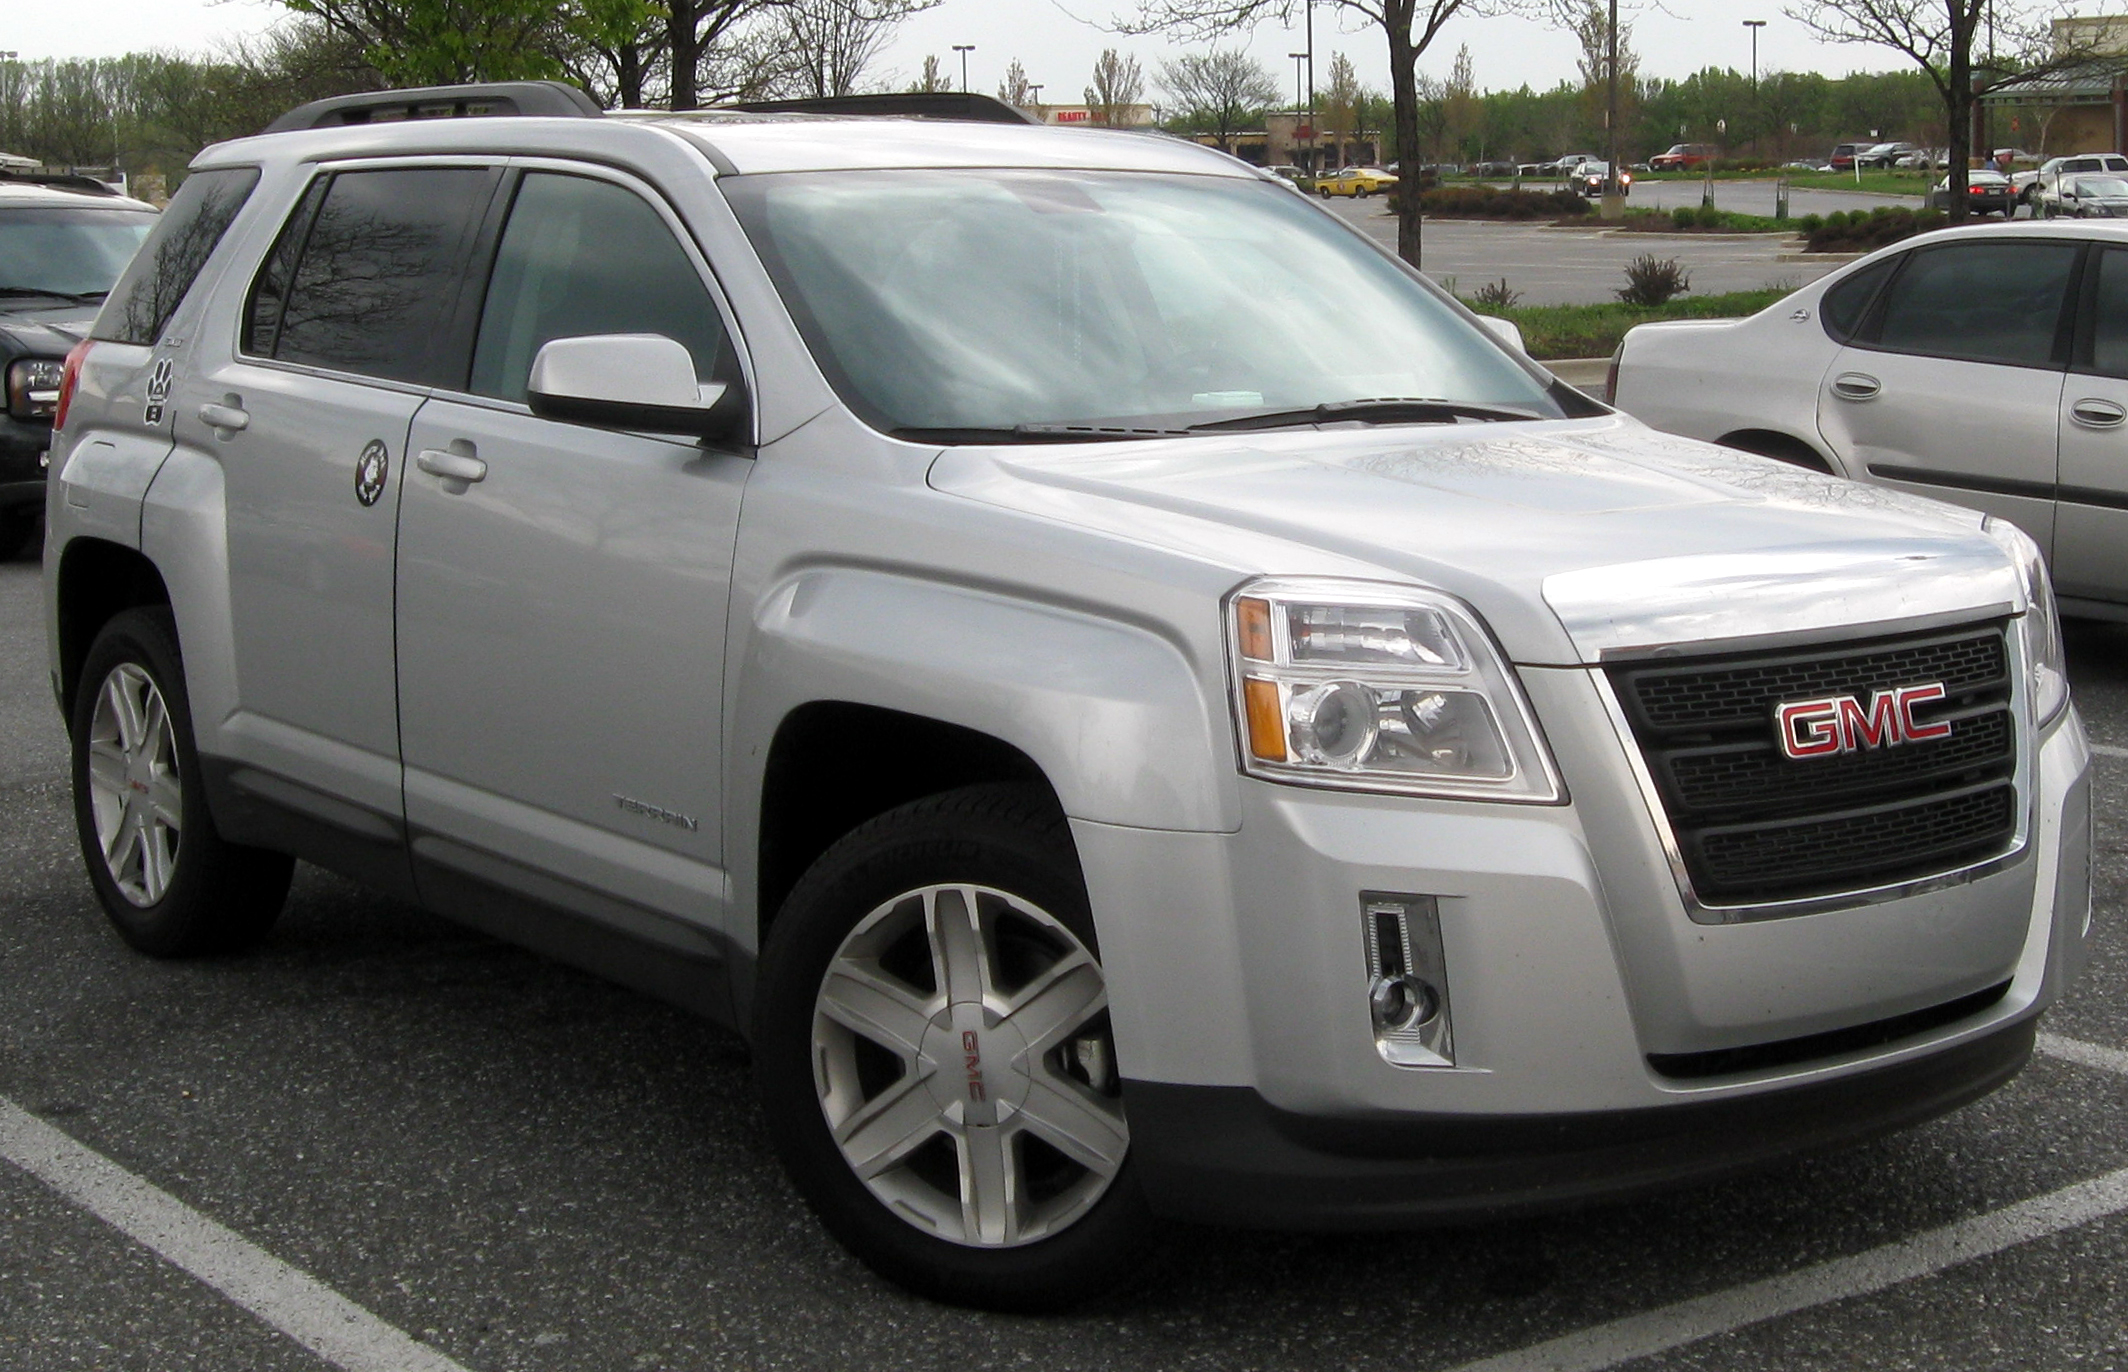 File Gmc Terrain 03 28 2012 Jpg Wikimedia Commons